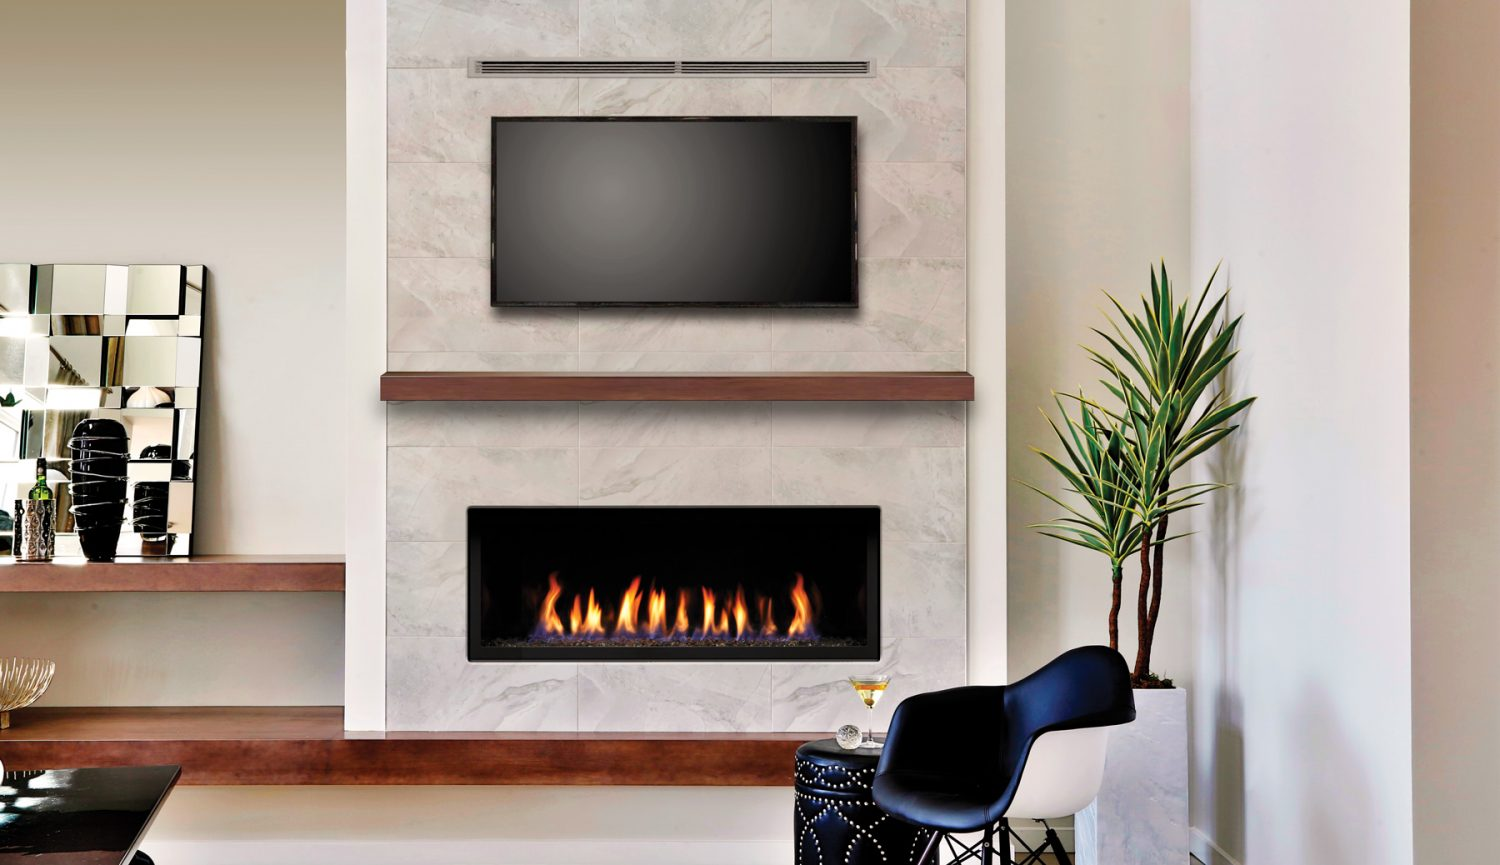 Kingsman Vrb46 Direct Vent Fireplace Toronto Best Price